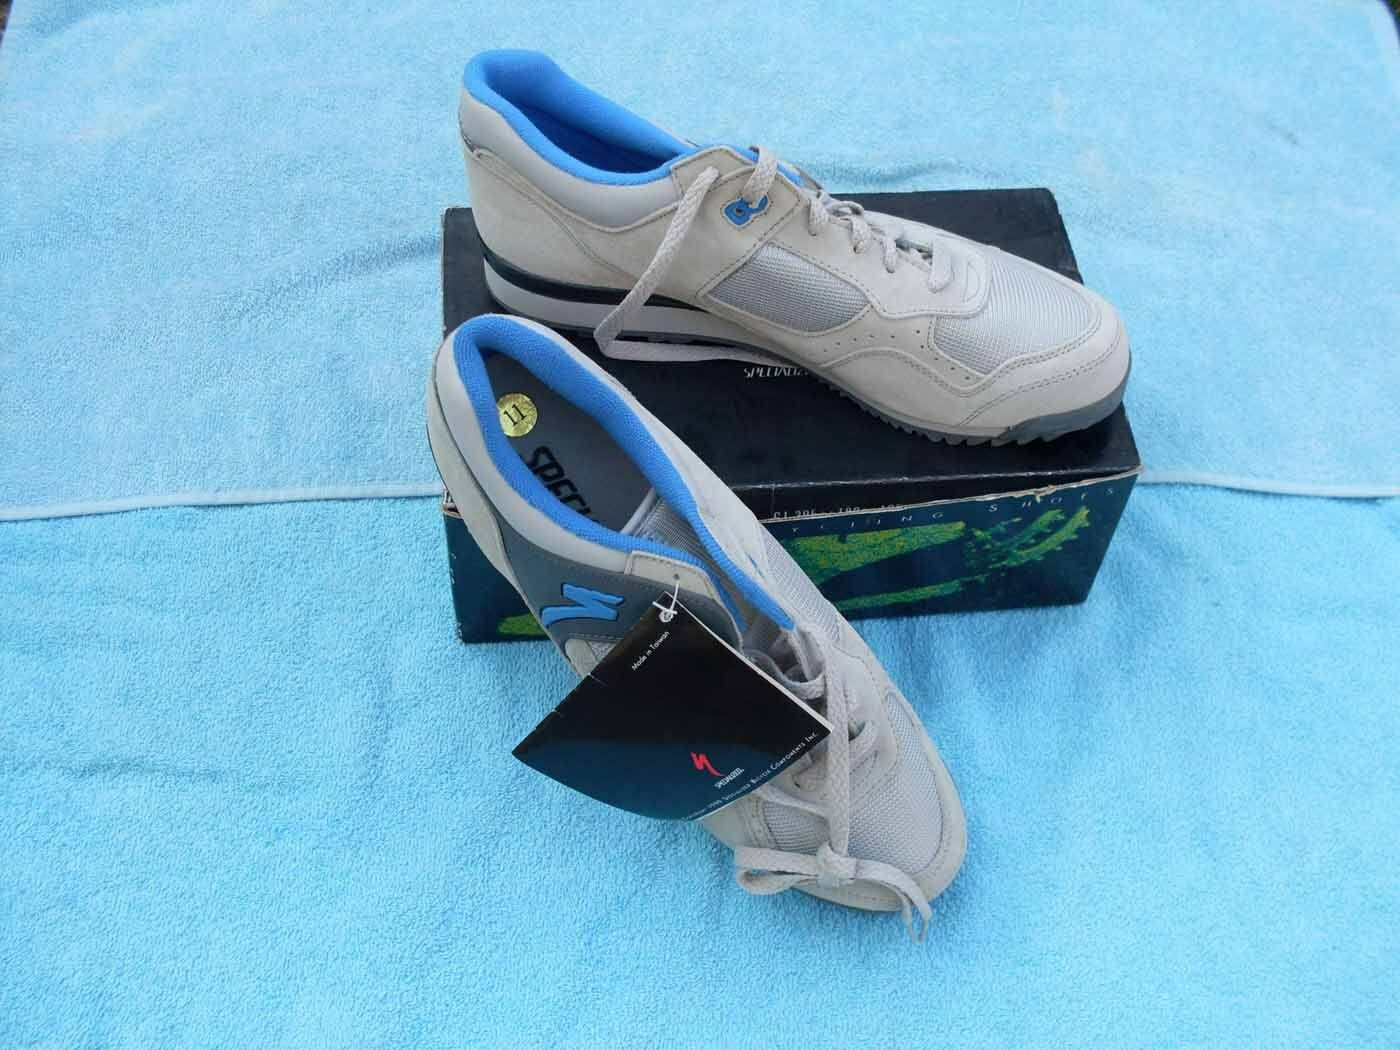 New Cycling Schuhes Specialized Größe US 11 wild dog Grau Blau